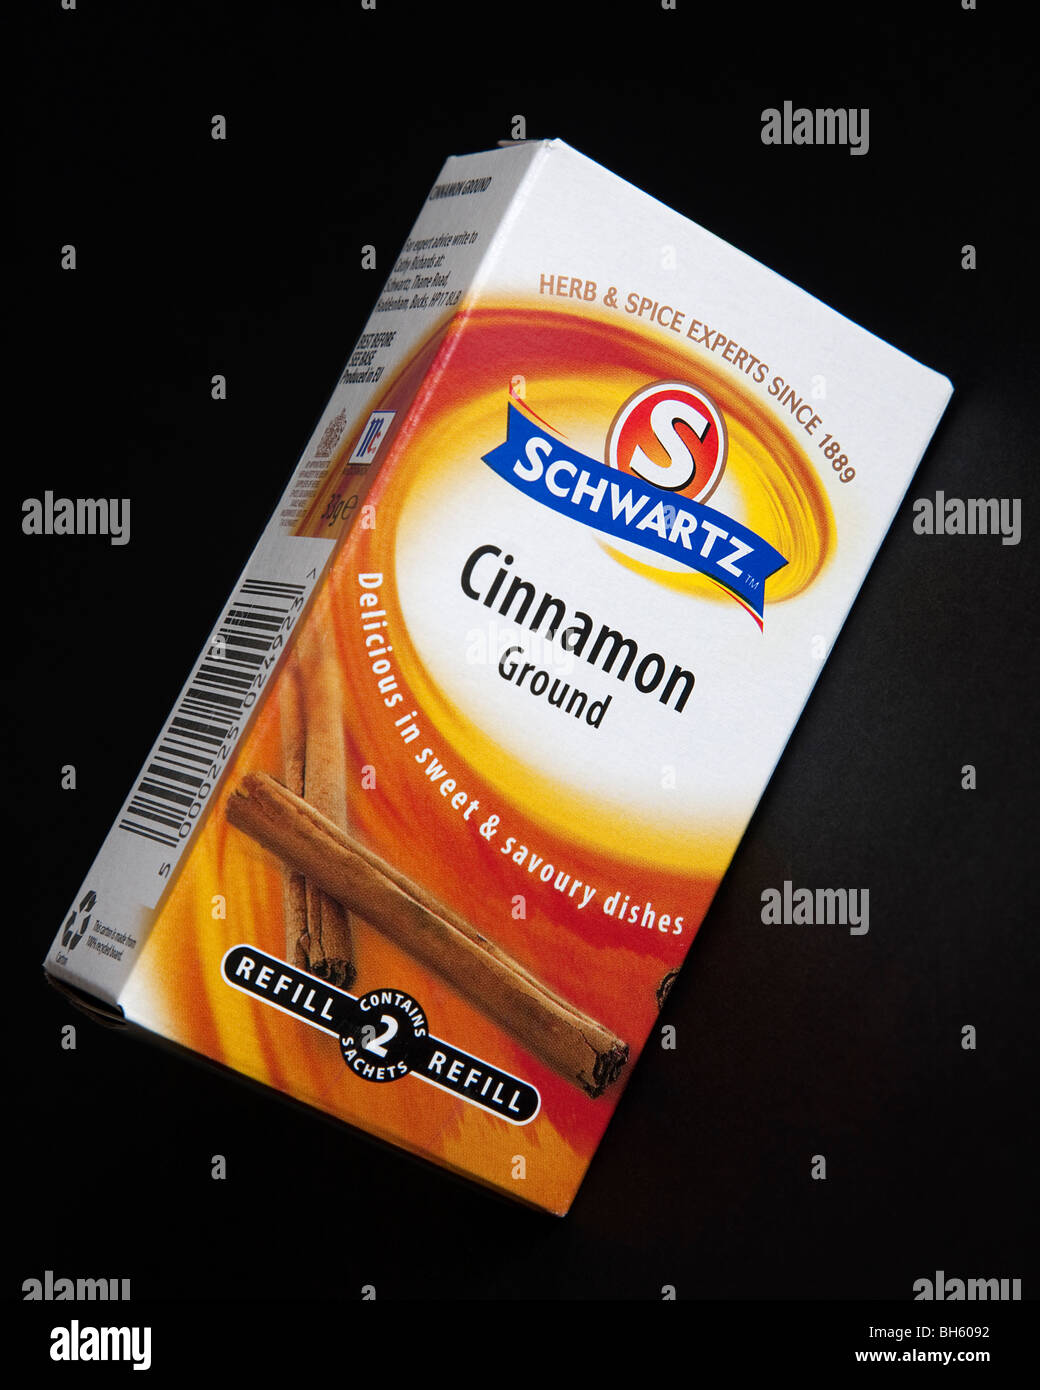 A refill pack of Schwartz ground cinnamon. - Stock Image